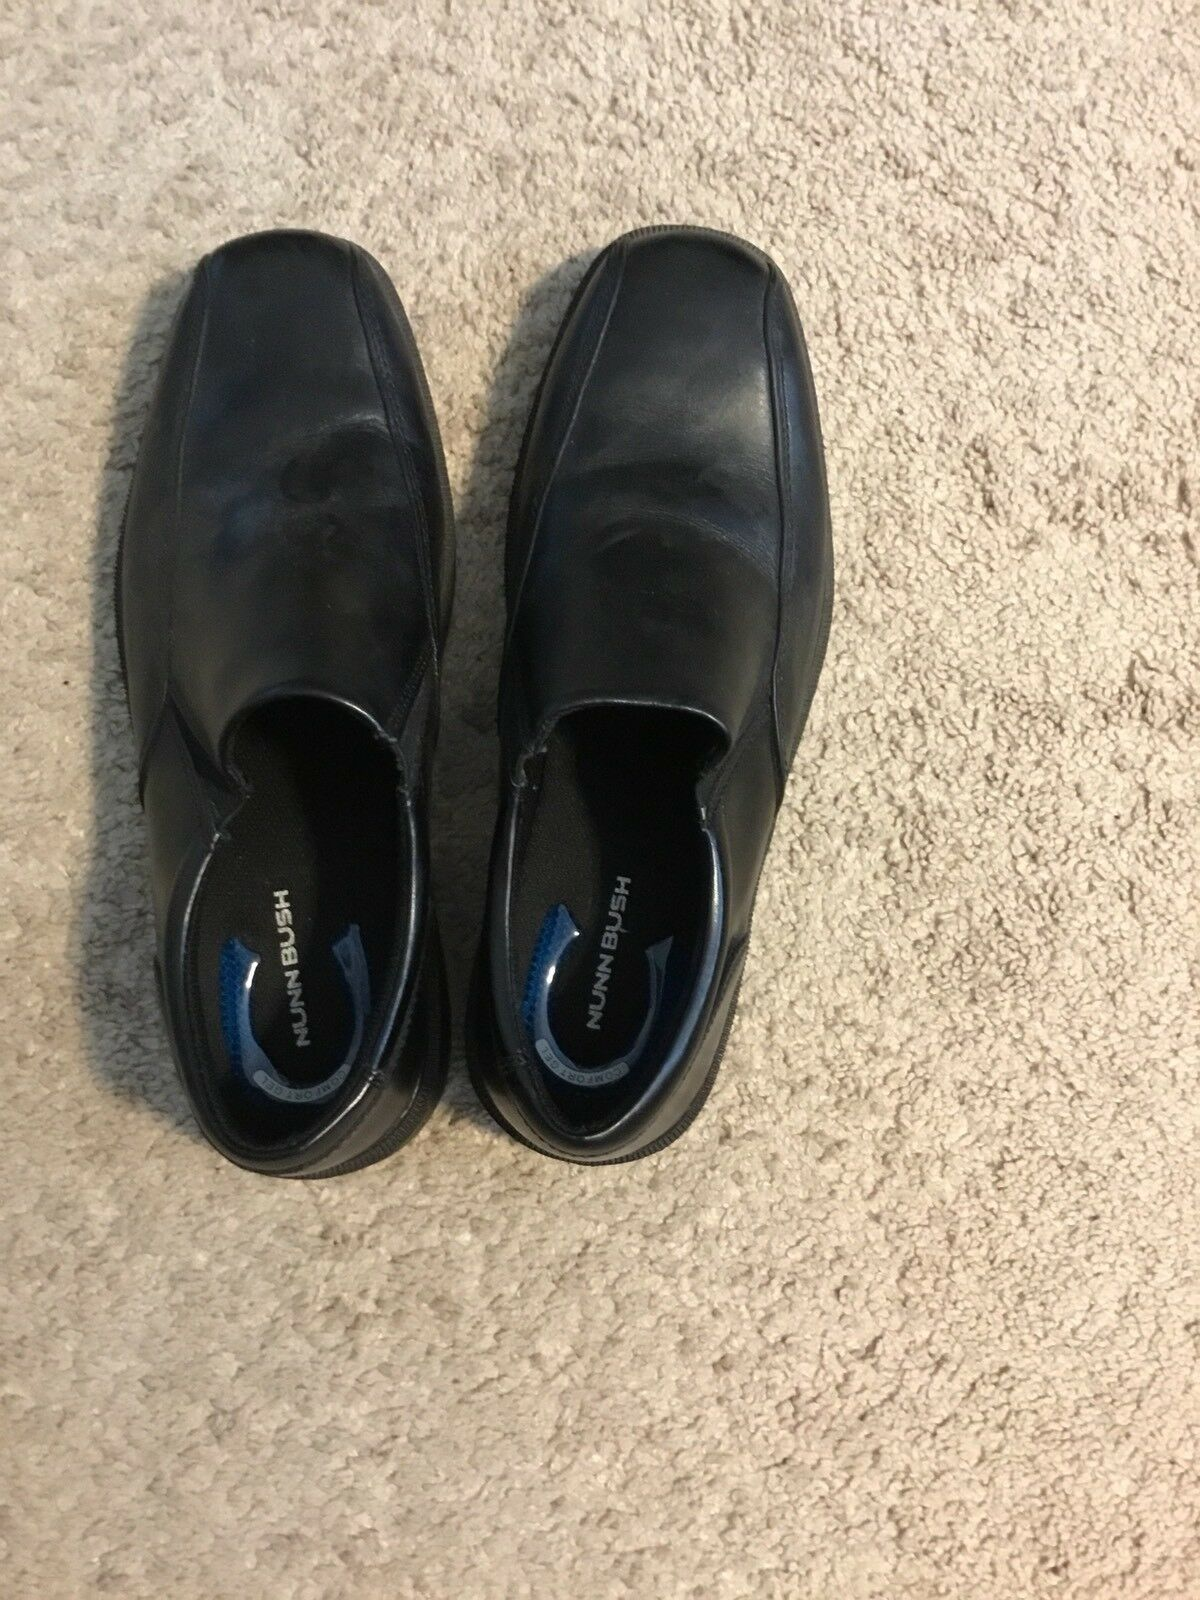 Nunn Bush 10.5 Black Loafer Shoe size 10.5 Bush Pre-Owned c2e3b3